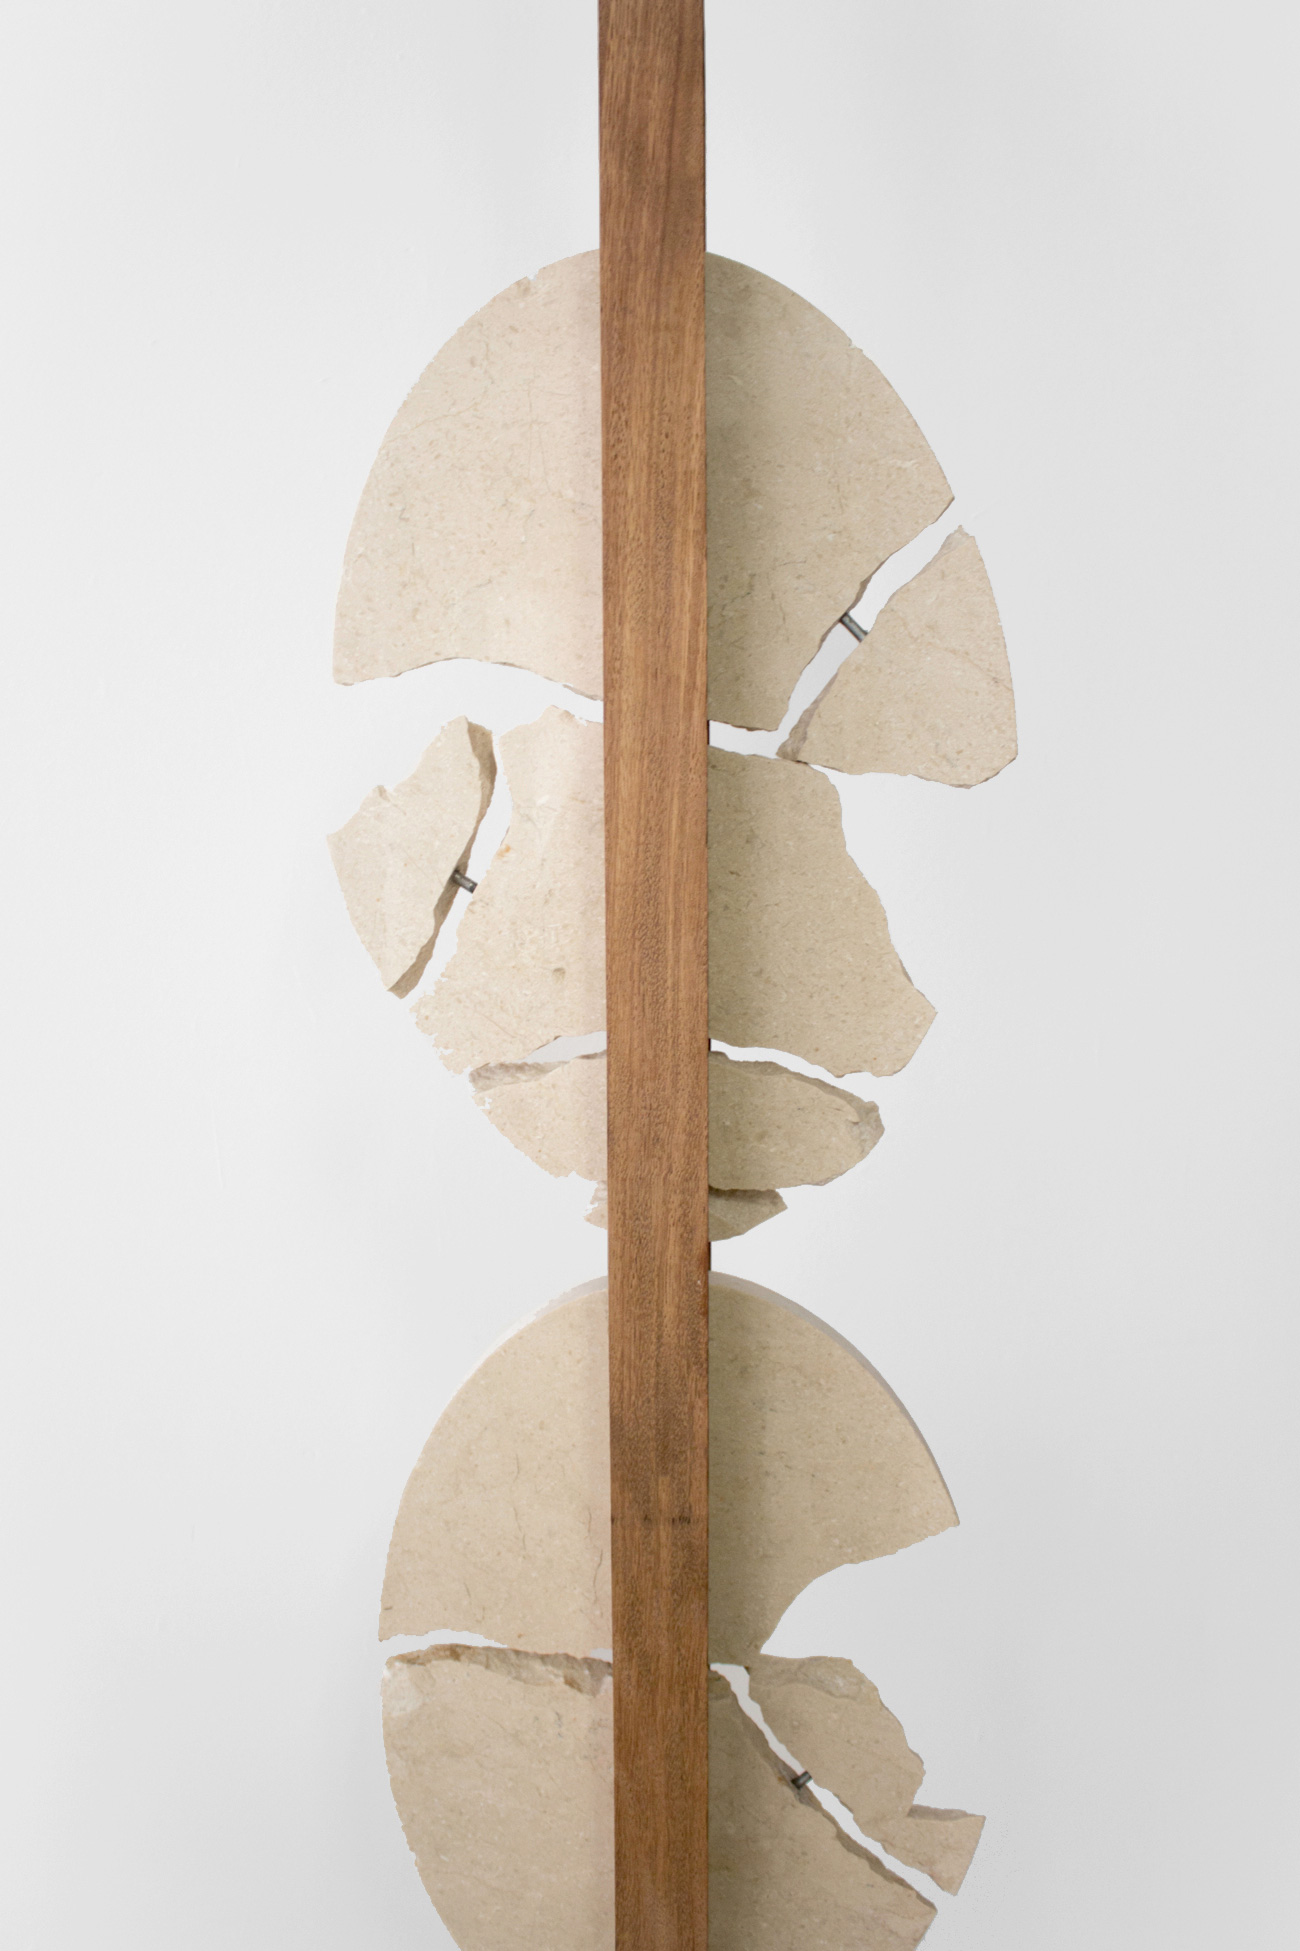 Carla Cascales' Sculpture Project, Coffee | Yellowtrace